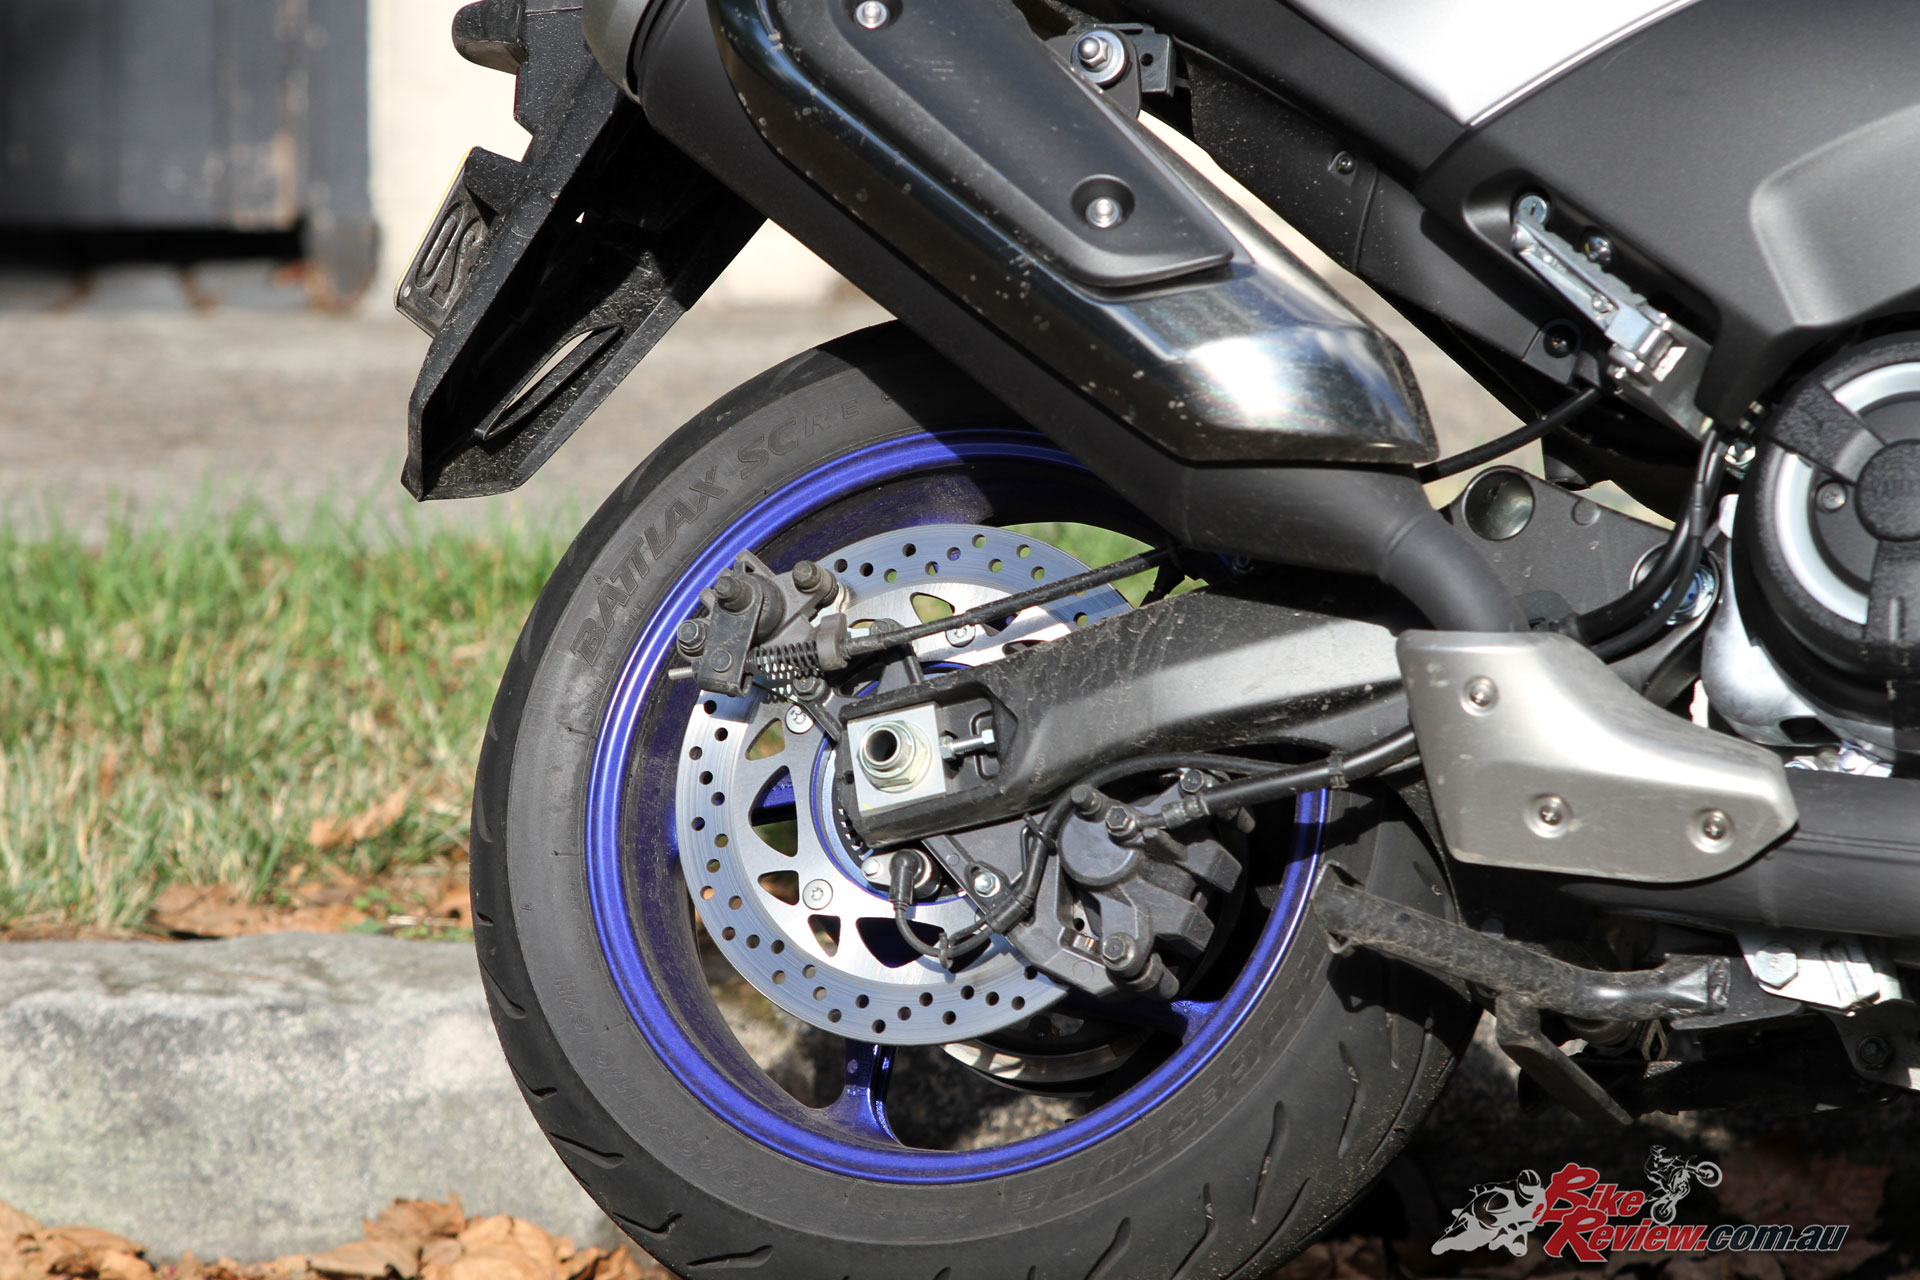 A new swingarm is featured, which is 40mm longer, while the overall wheelbase is 5mm shorter than the Iron Max.